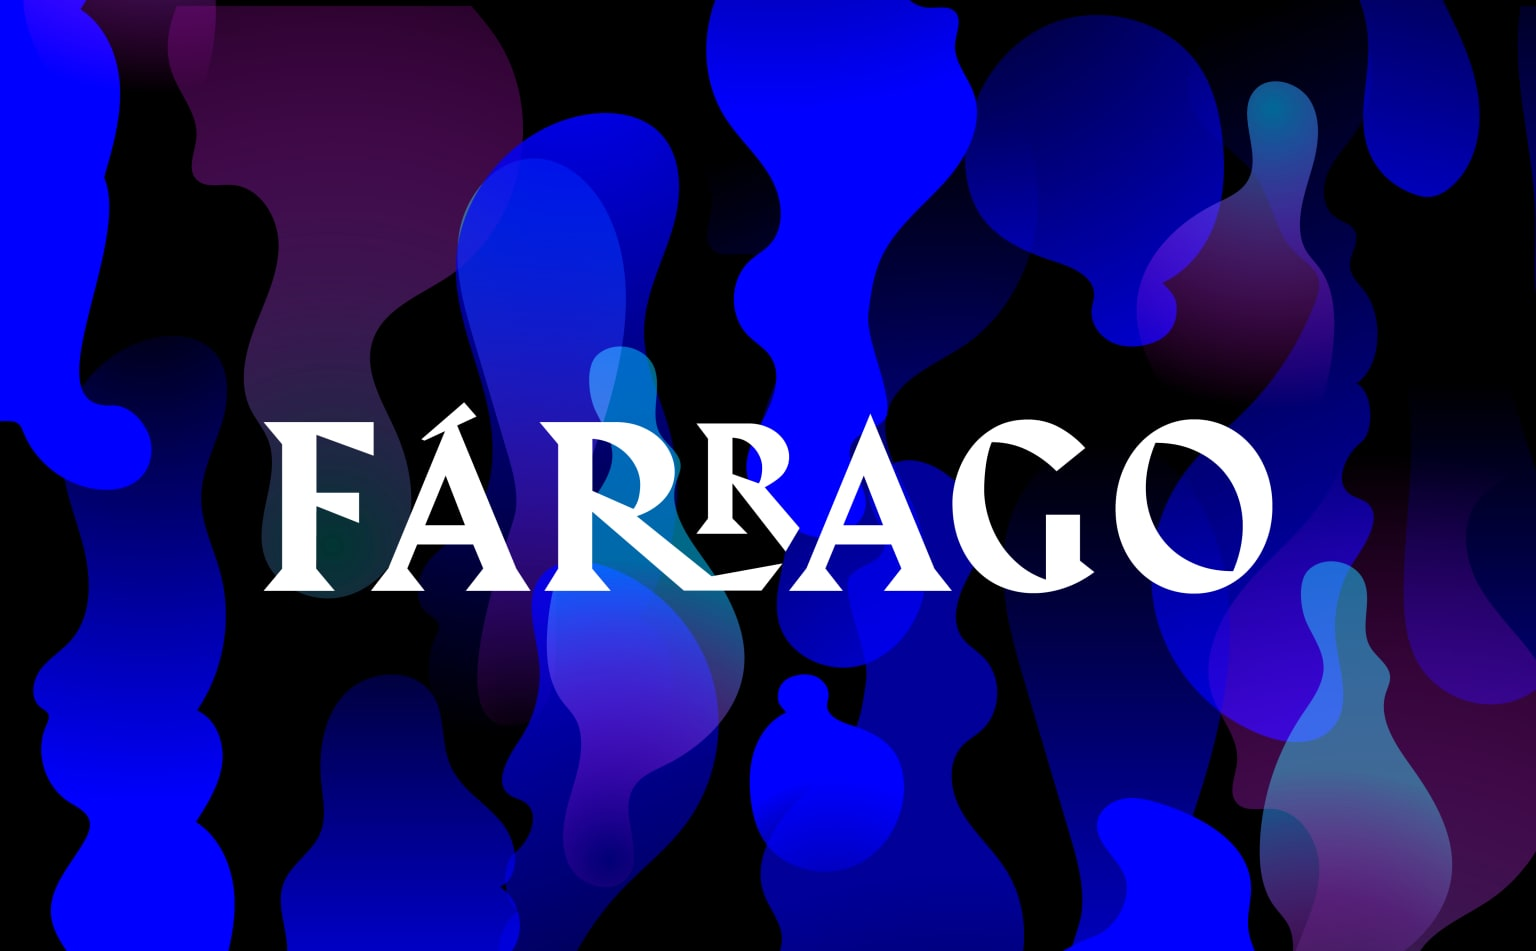 Fárrago Movie Brand&Titles